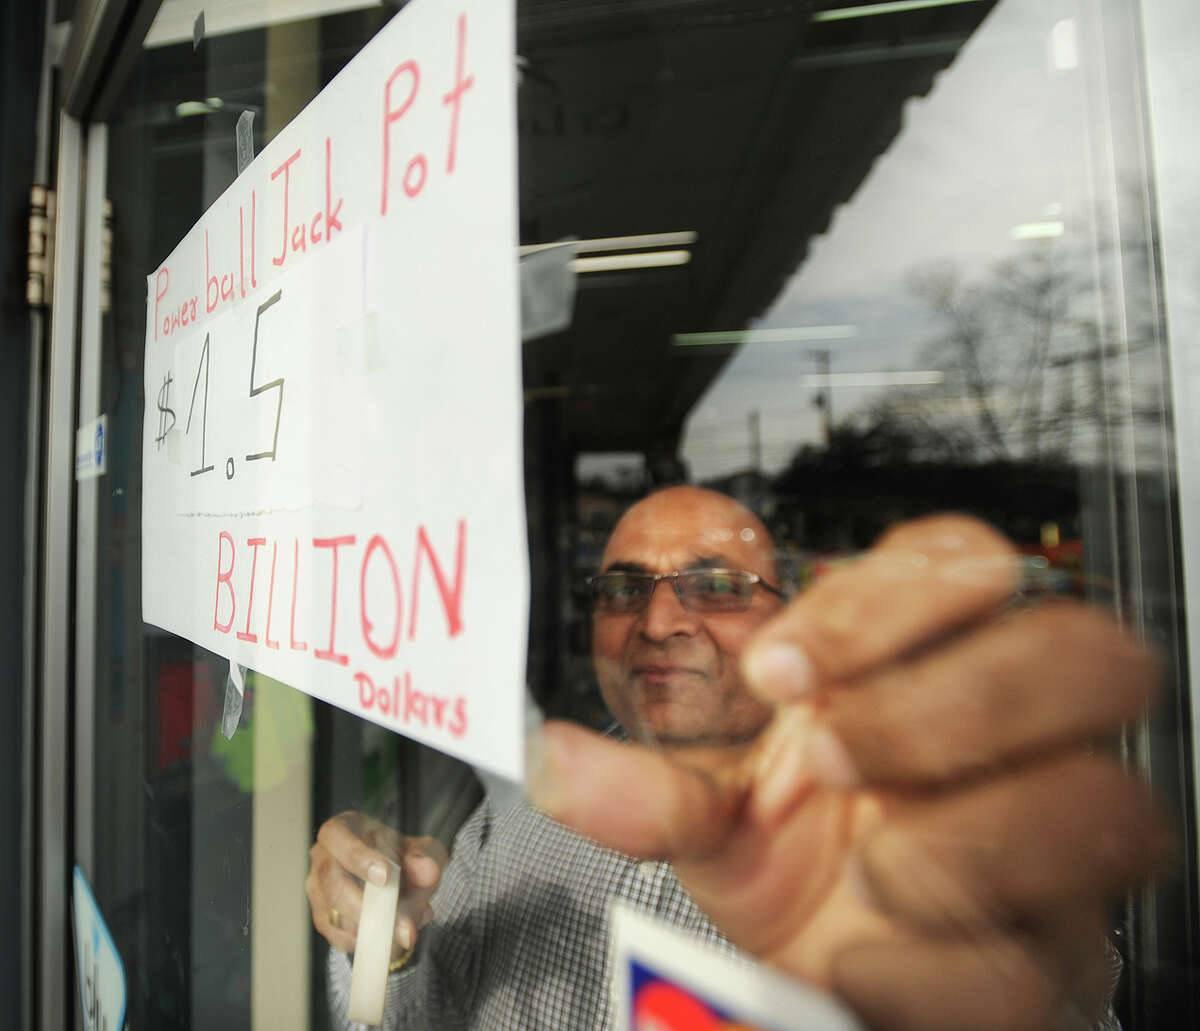 Ramesh Patel posts a revised Powerball jackpot total on the front door at News Express on Tunxis Hill Cutoff in Fairfield, Conn. on Tuesday, January 12, 2016. The jackpot had risen past $1.5 billion dollars as customers flooded the store for tickets.